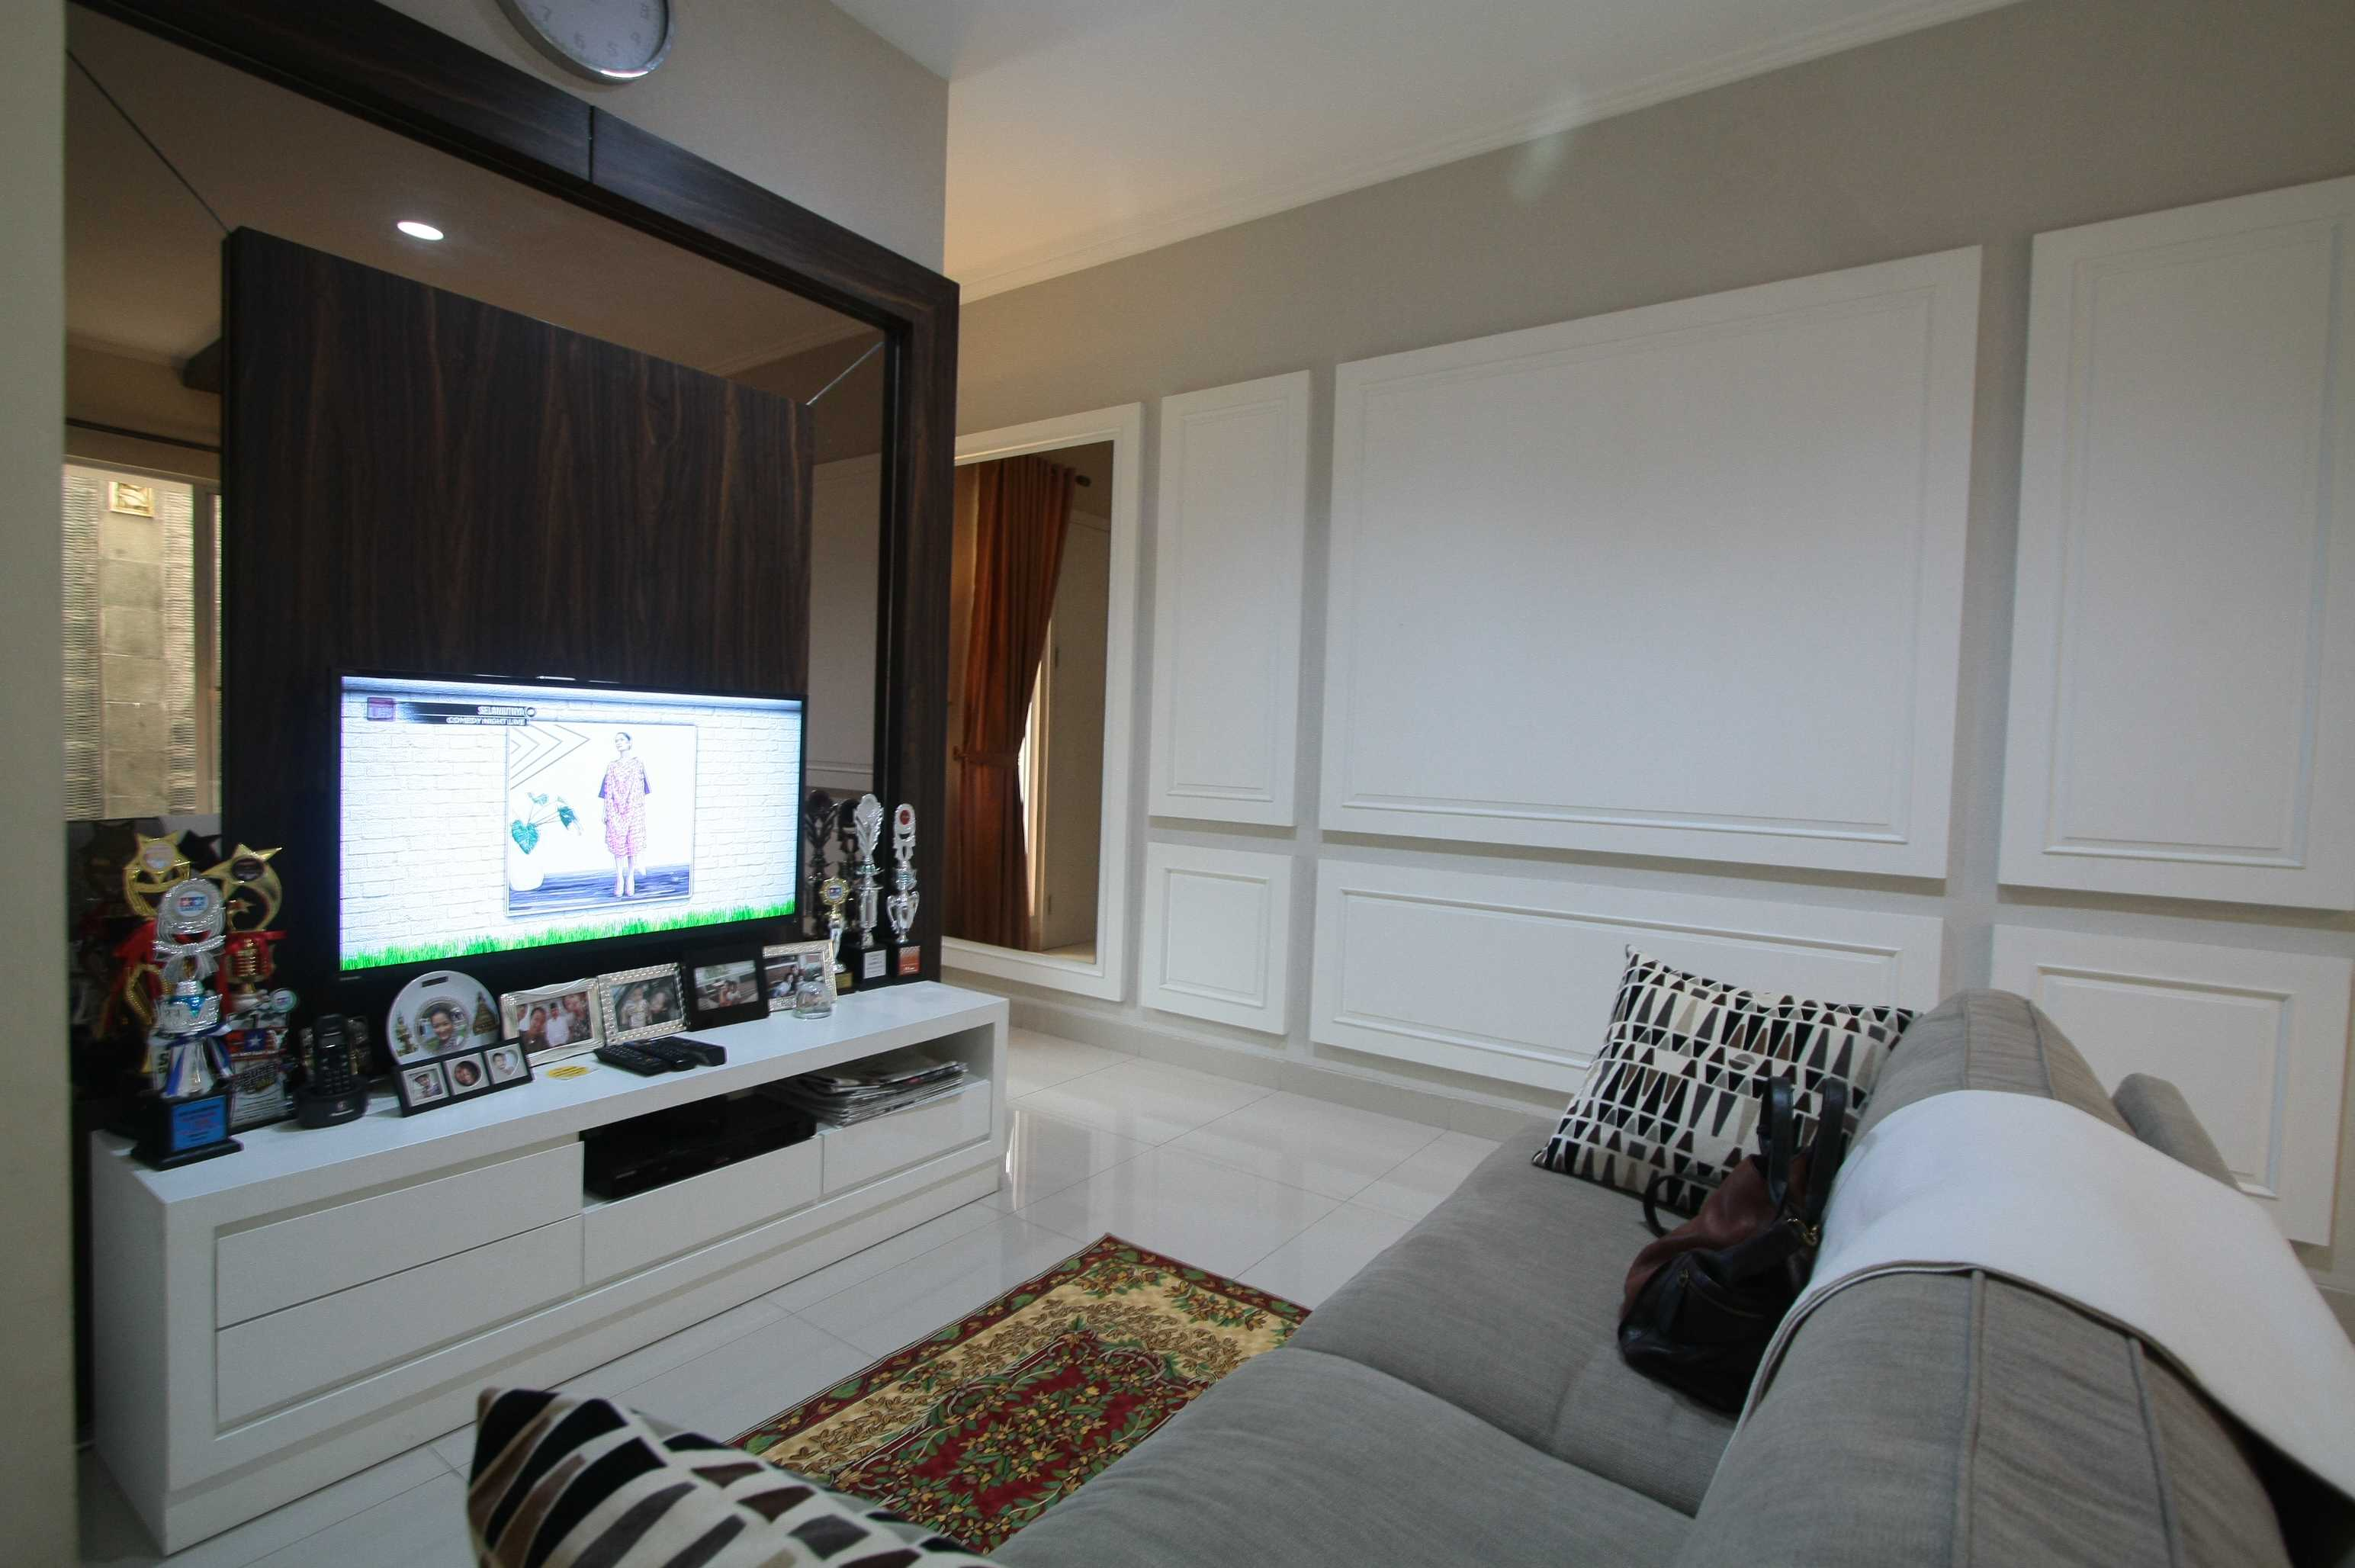 Exxo Interior Grand Galaxy Residence Bekasi Bekasi Tv Board   28109